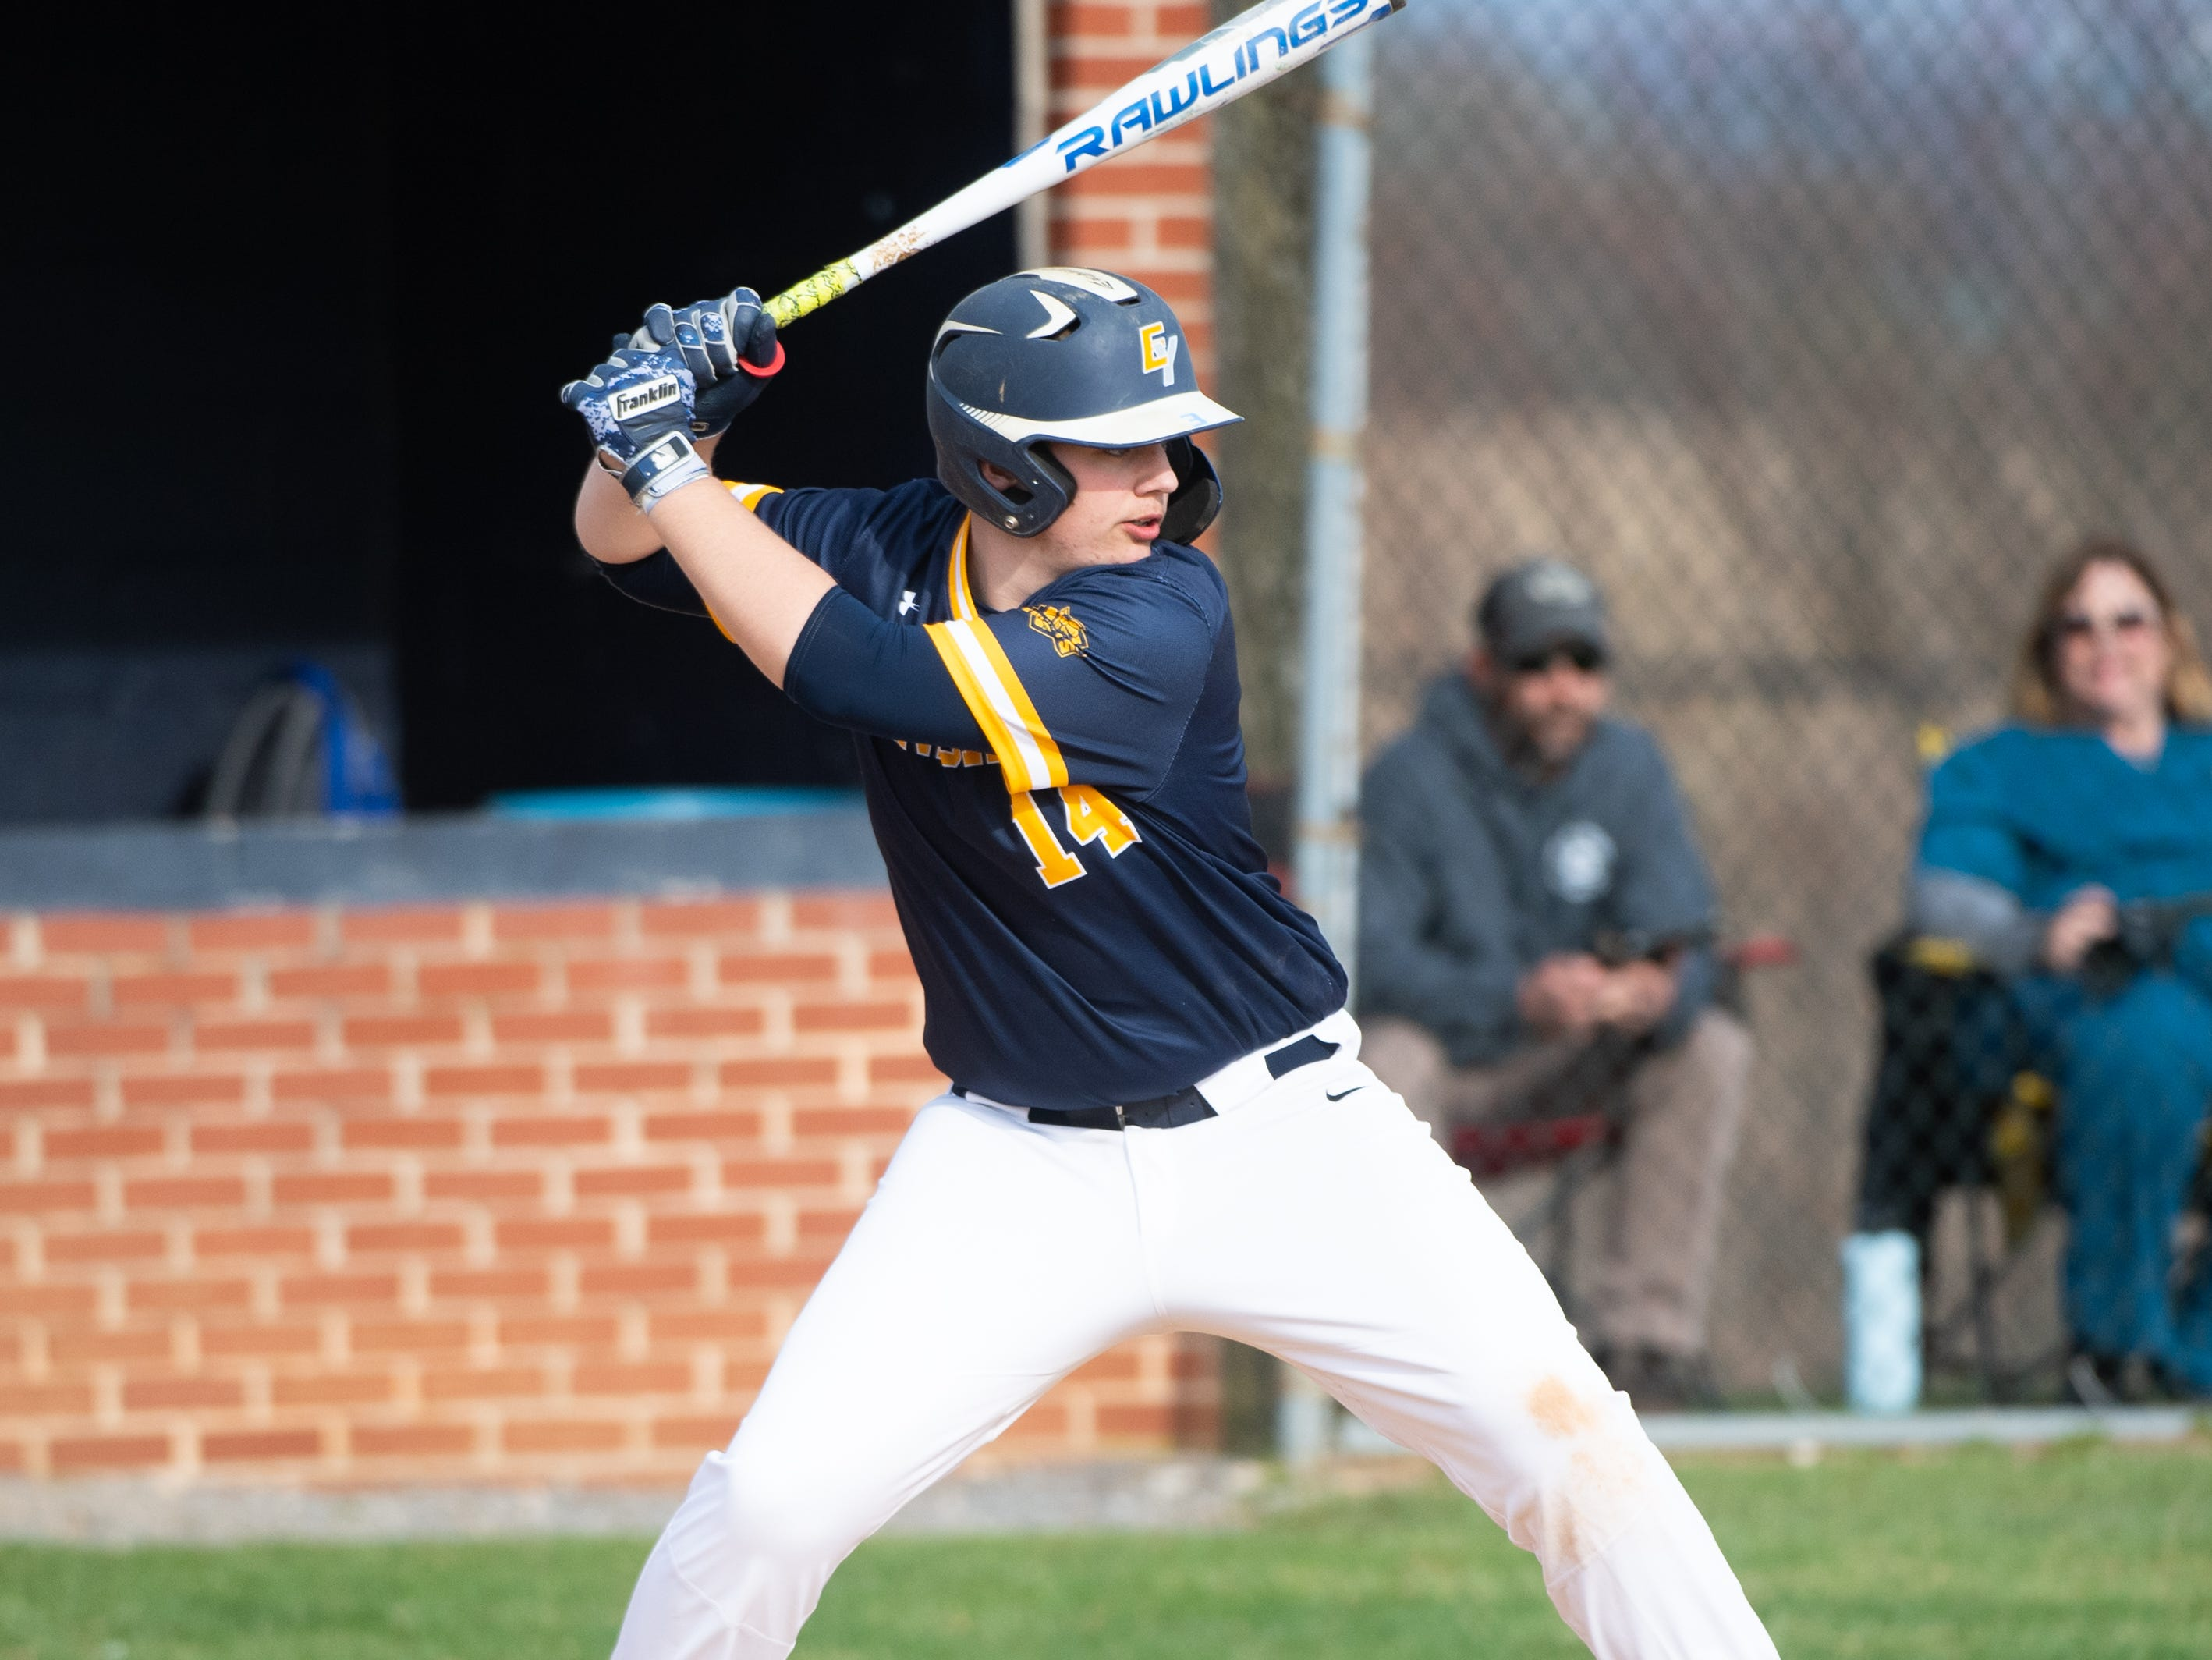 Dyson Renn (14) looks to get a hit during the baseball game between Eastern York and Kennard-Dale, April 10, 2019 at Eastern York High School. The Golden Knights defeated the Rams 8 to 1.